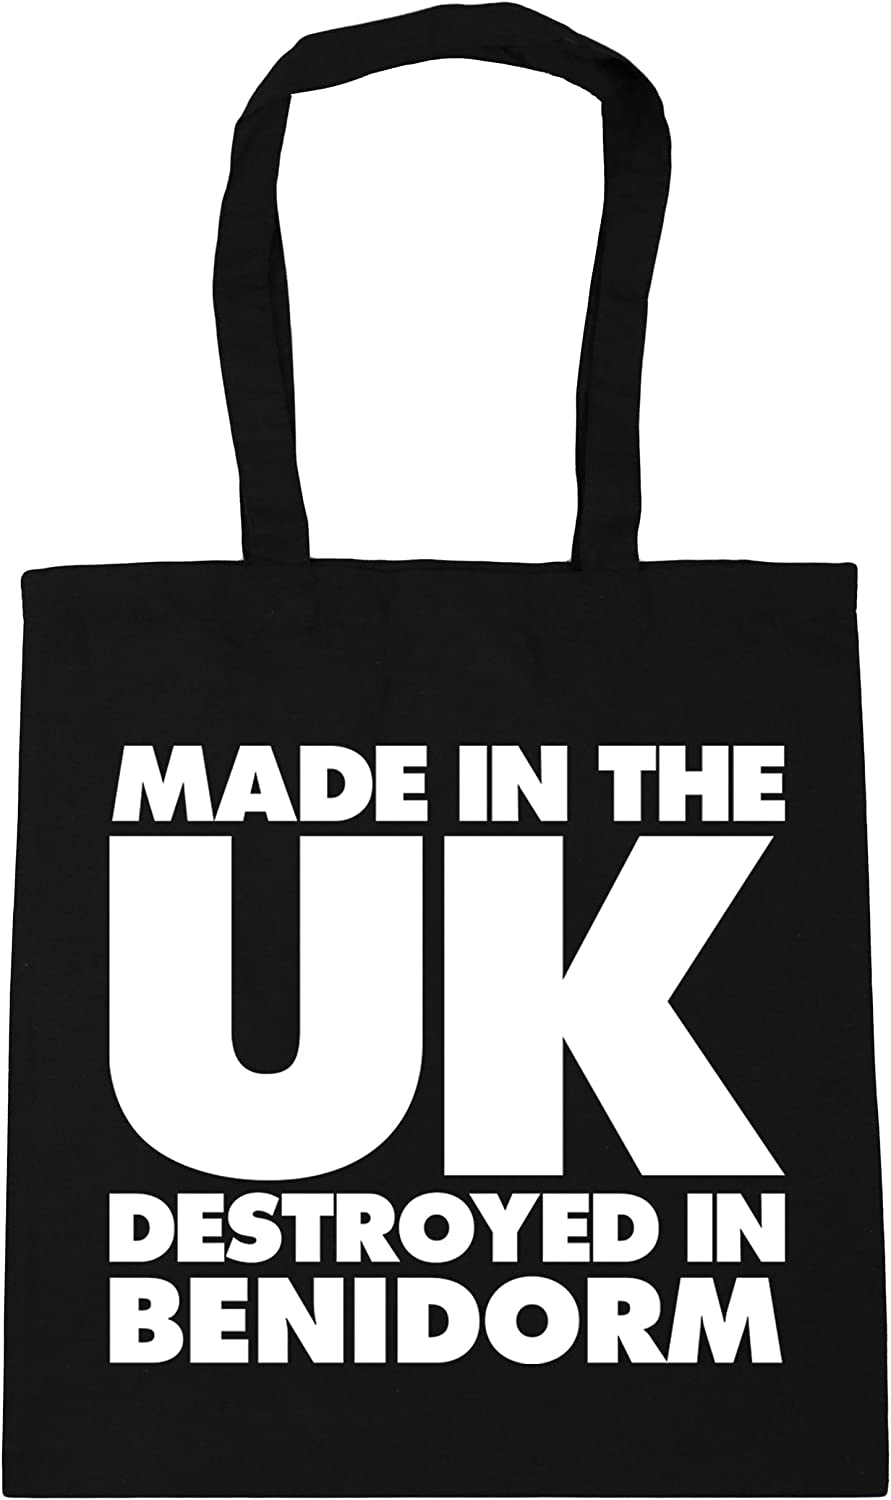 10 litres Made in the UK Destroyed in Aiya Napa Tote Shopping Gym Beach Bag 42cm x38cm